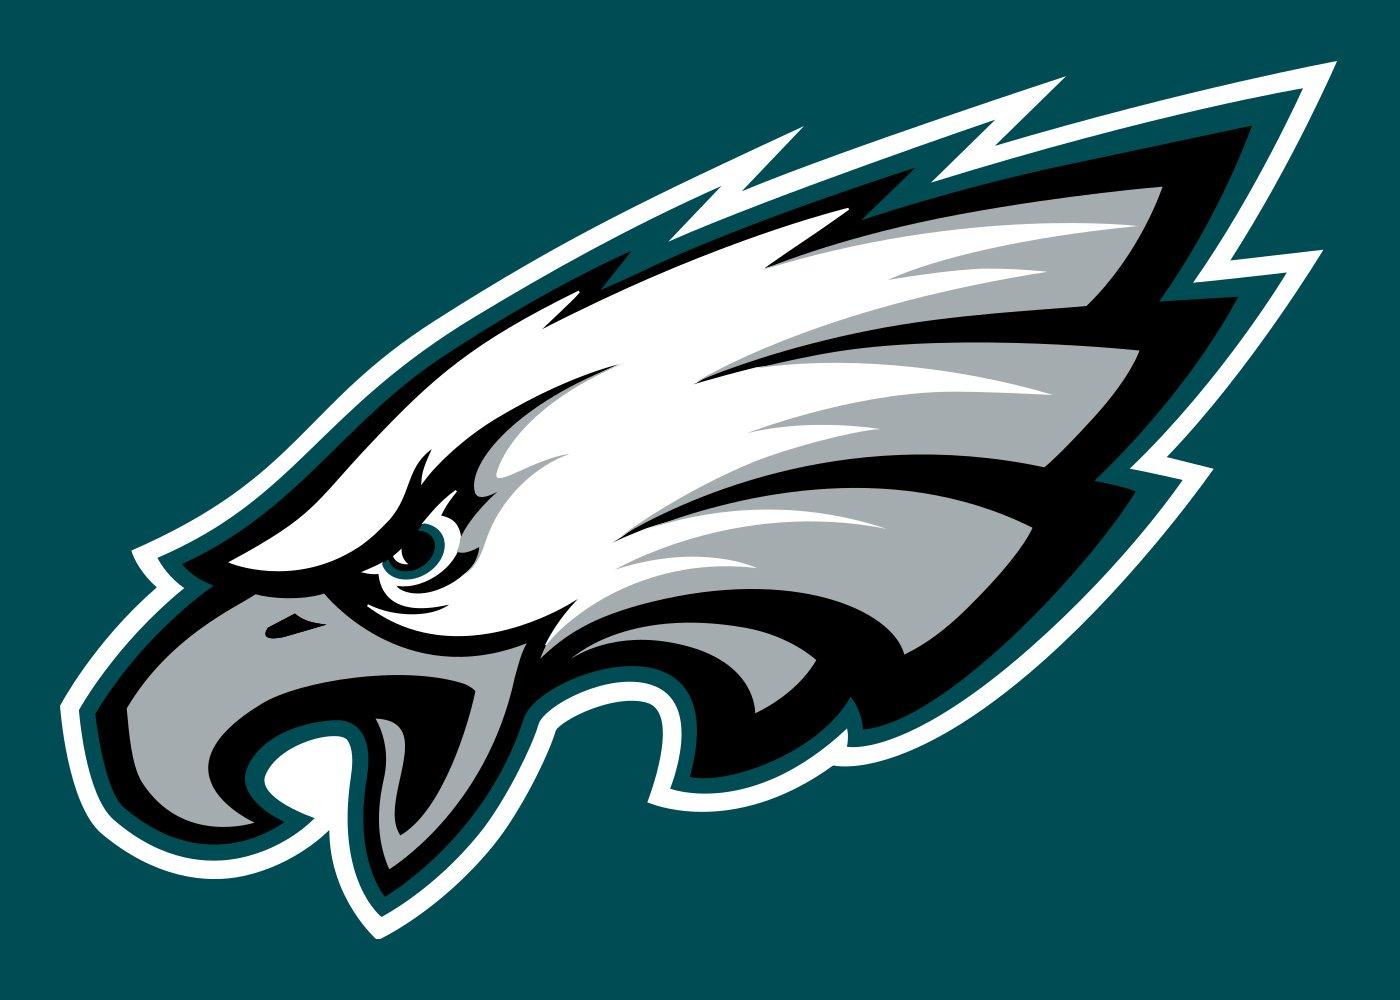 Philadelphia eagle logo philadelphia eagle symbol meaning emblem philadelphia eagles biocorpaavc Gallery